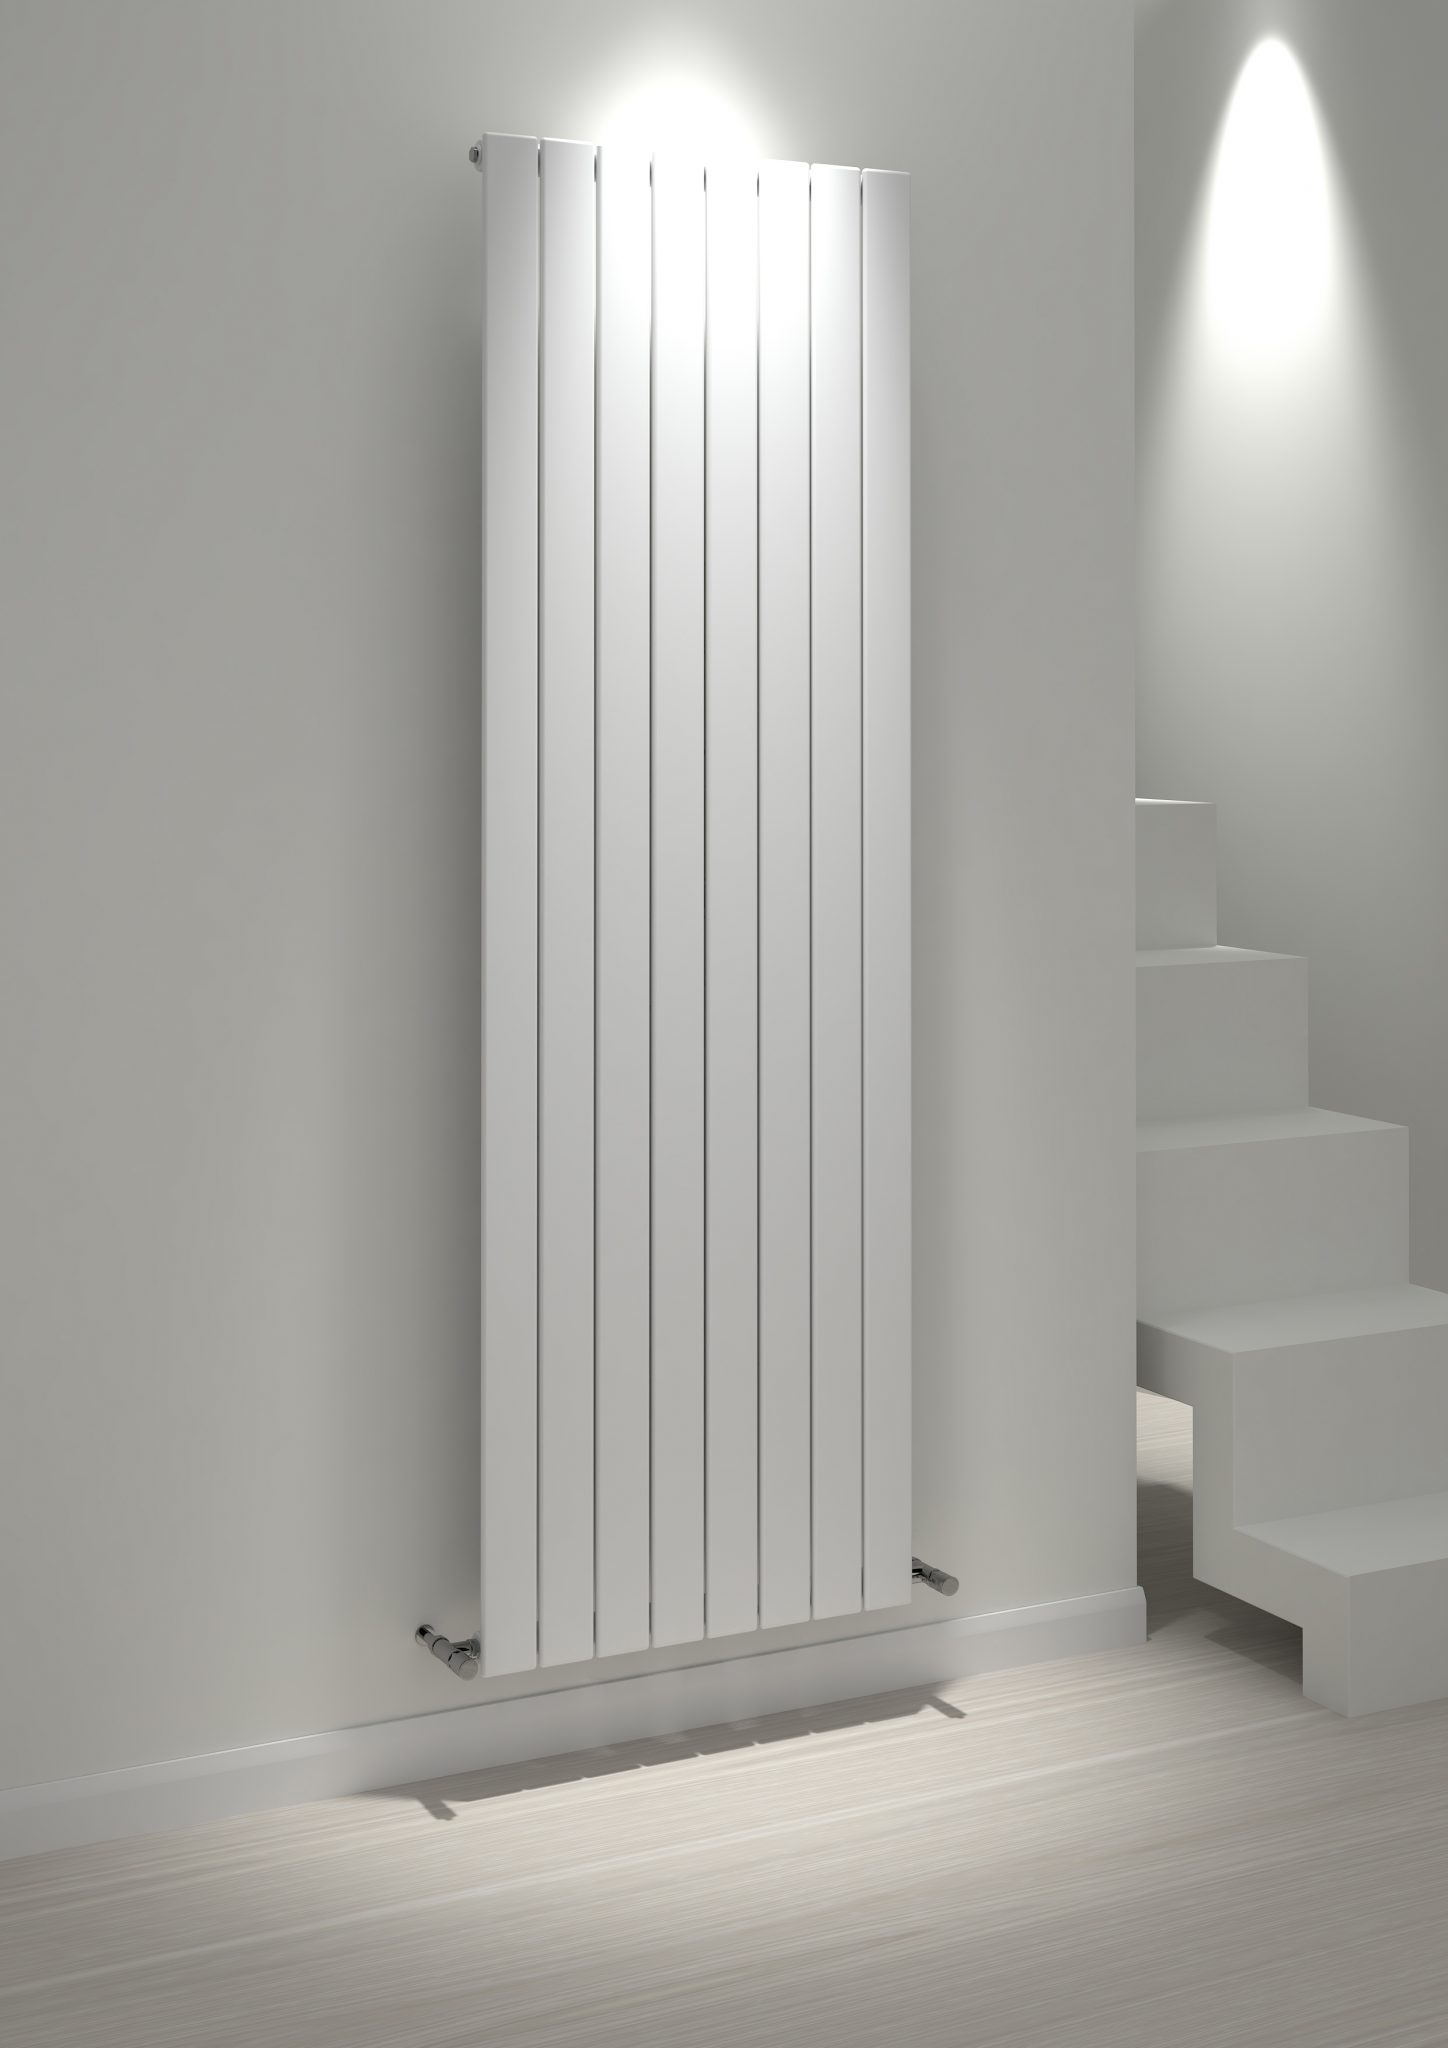 5060235345647 Kudox Tira Radiator Type 10V 1800mm x 588mm White IS